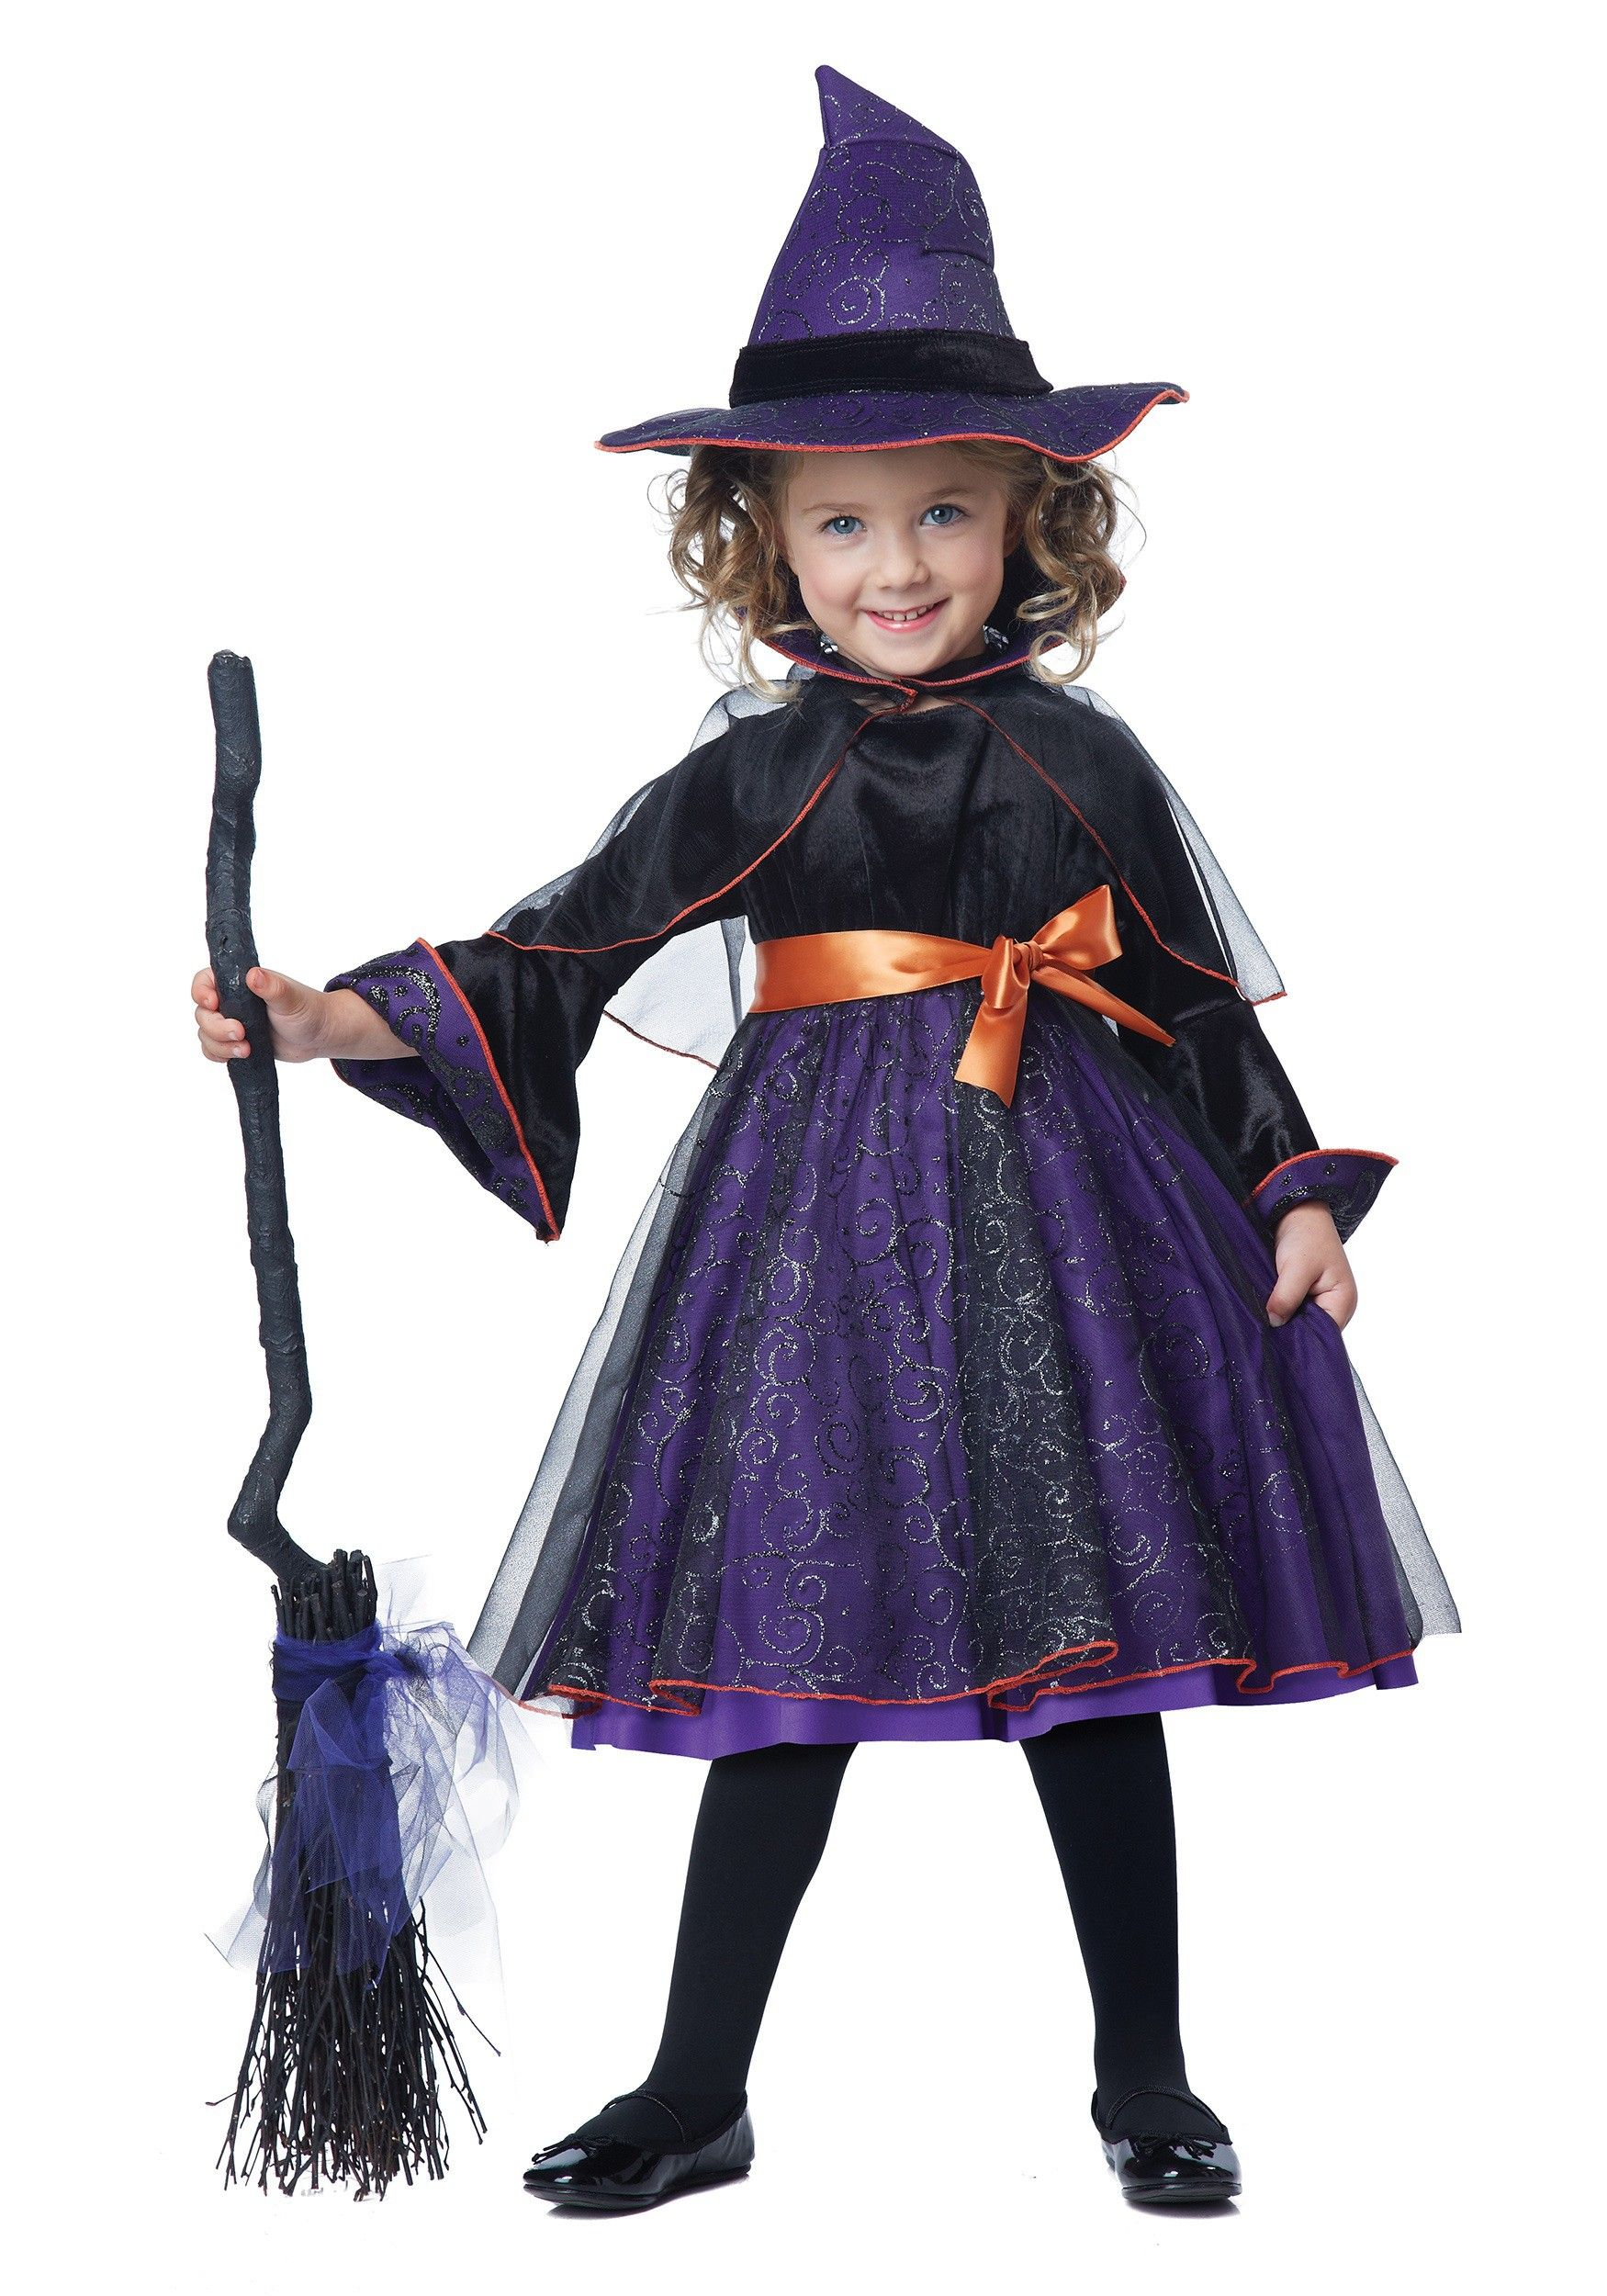 Toddler Hocus Pocus Witch Costume | Hocus pocus witches, Witch ...